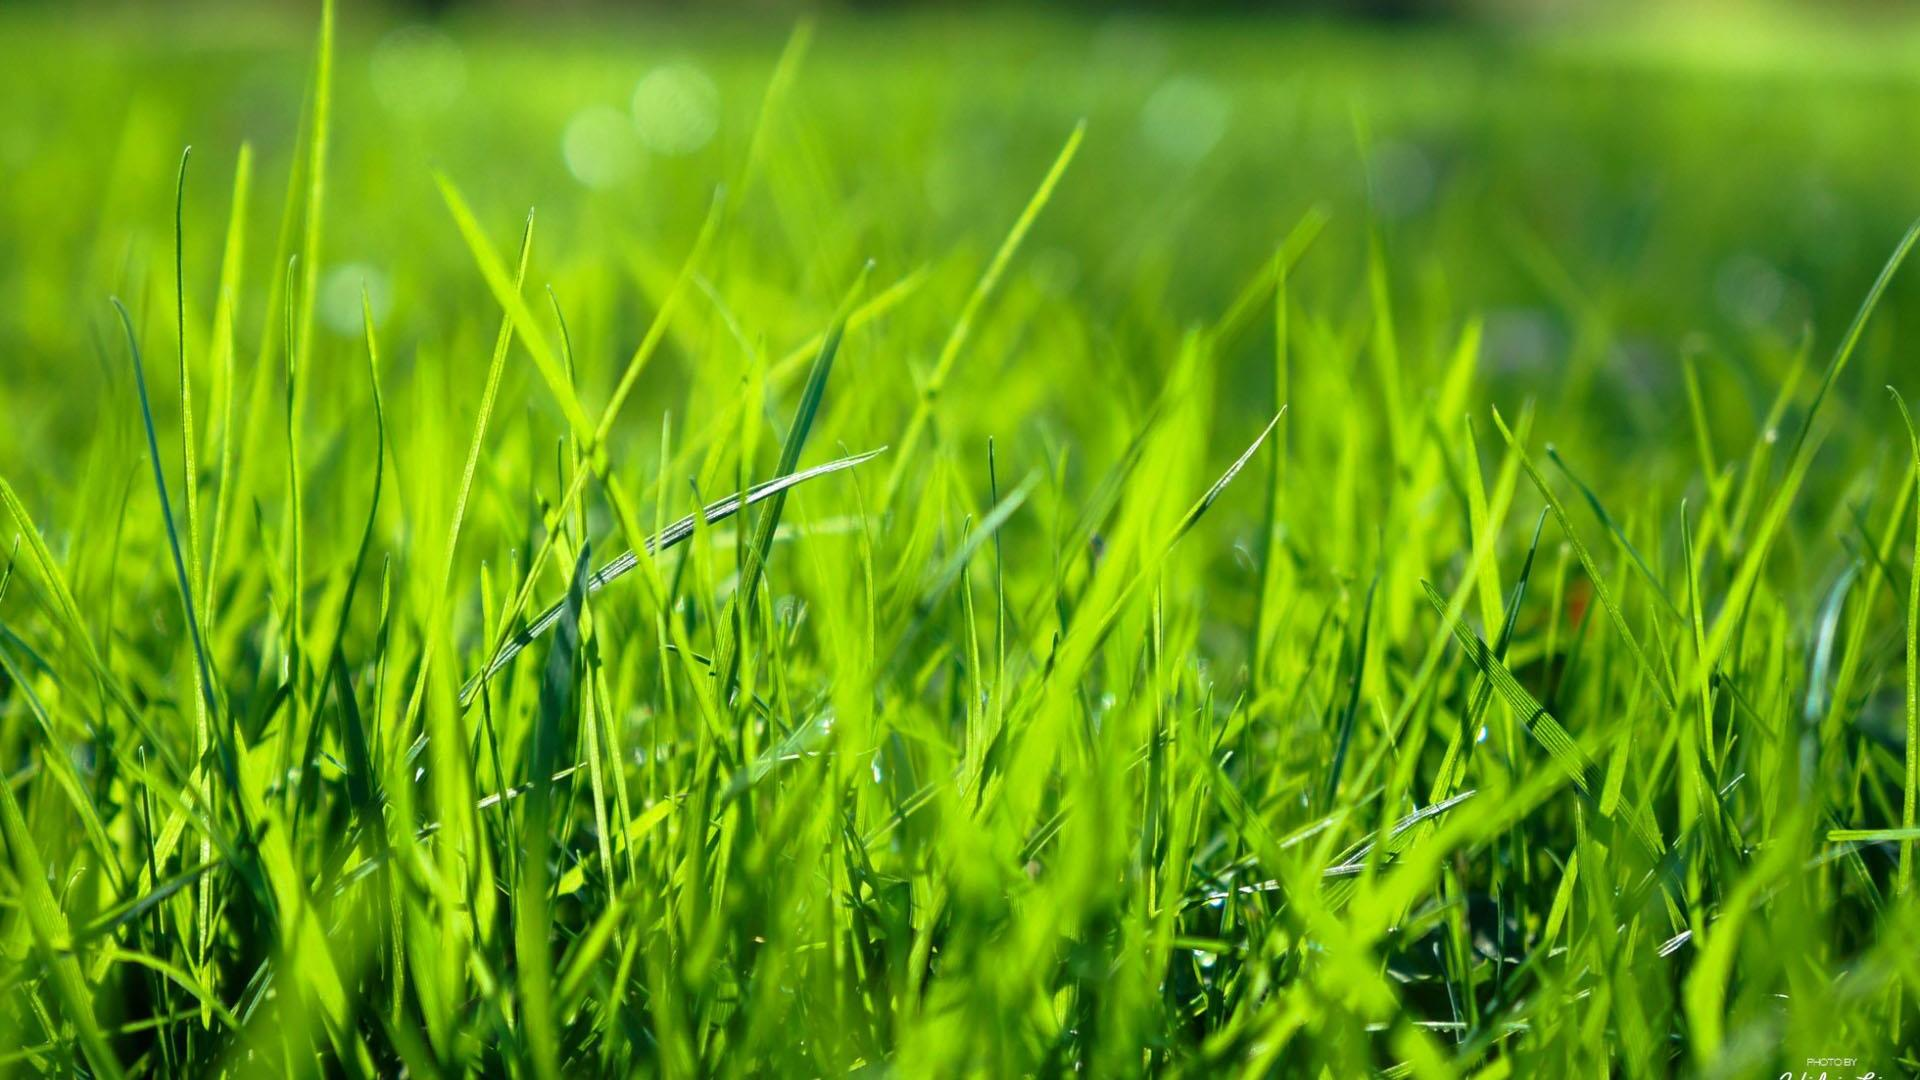 Fresh green grass.Wallpaper for Android - APK Download